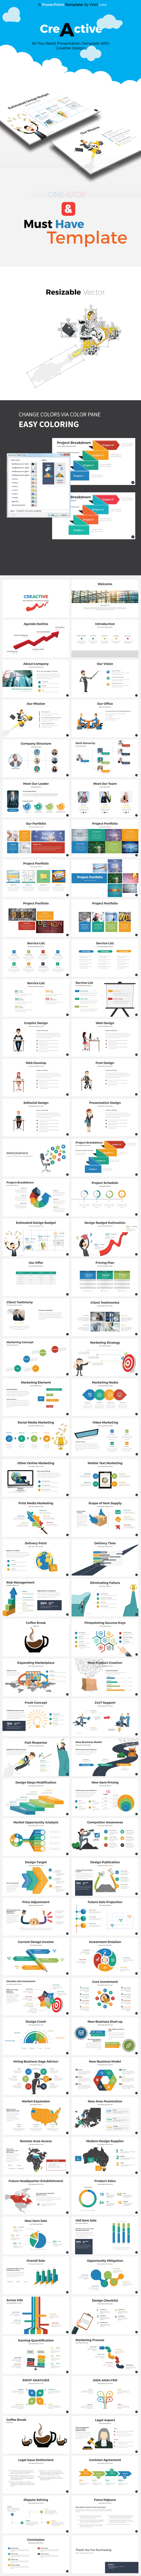 Creactive Presentation Template - Business PowerPoint Templates